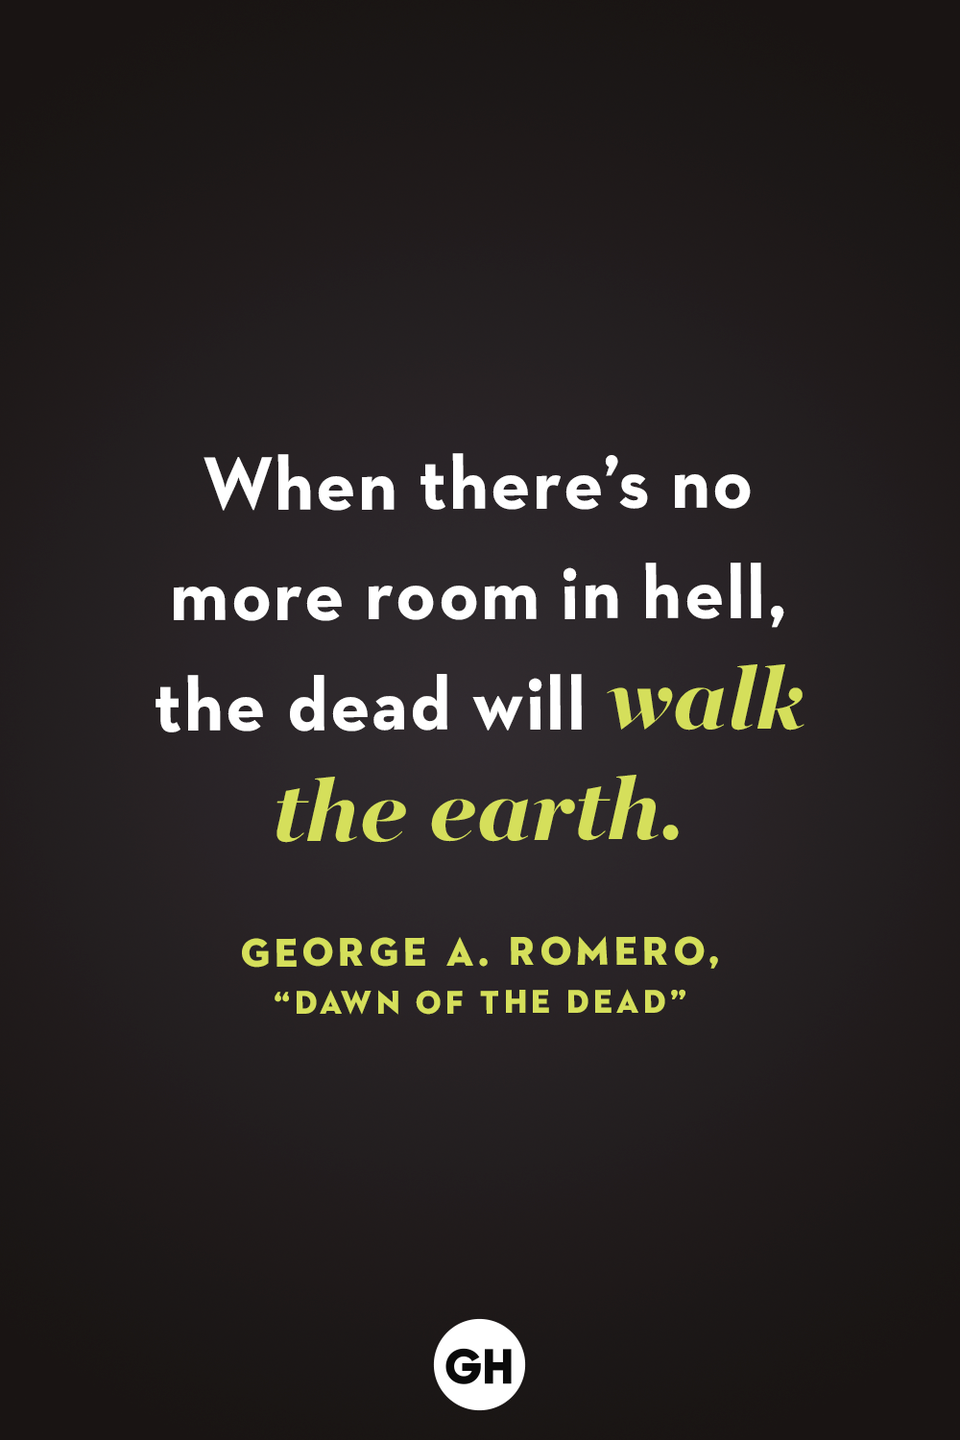 <p>When there's no more room in hell, the dead will walk the earth. </p>